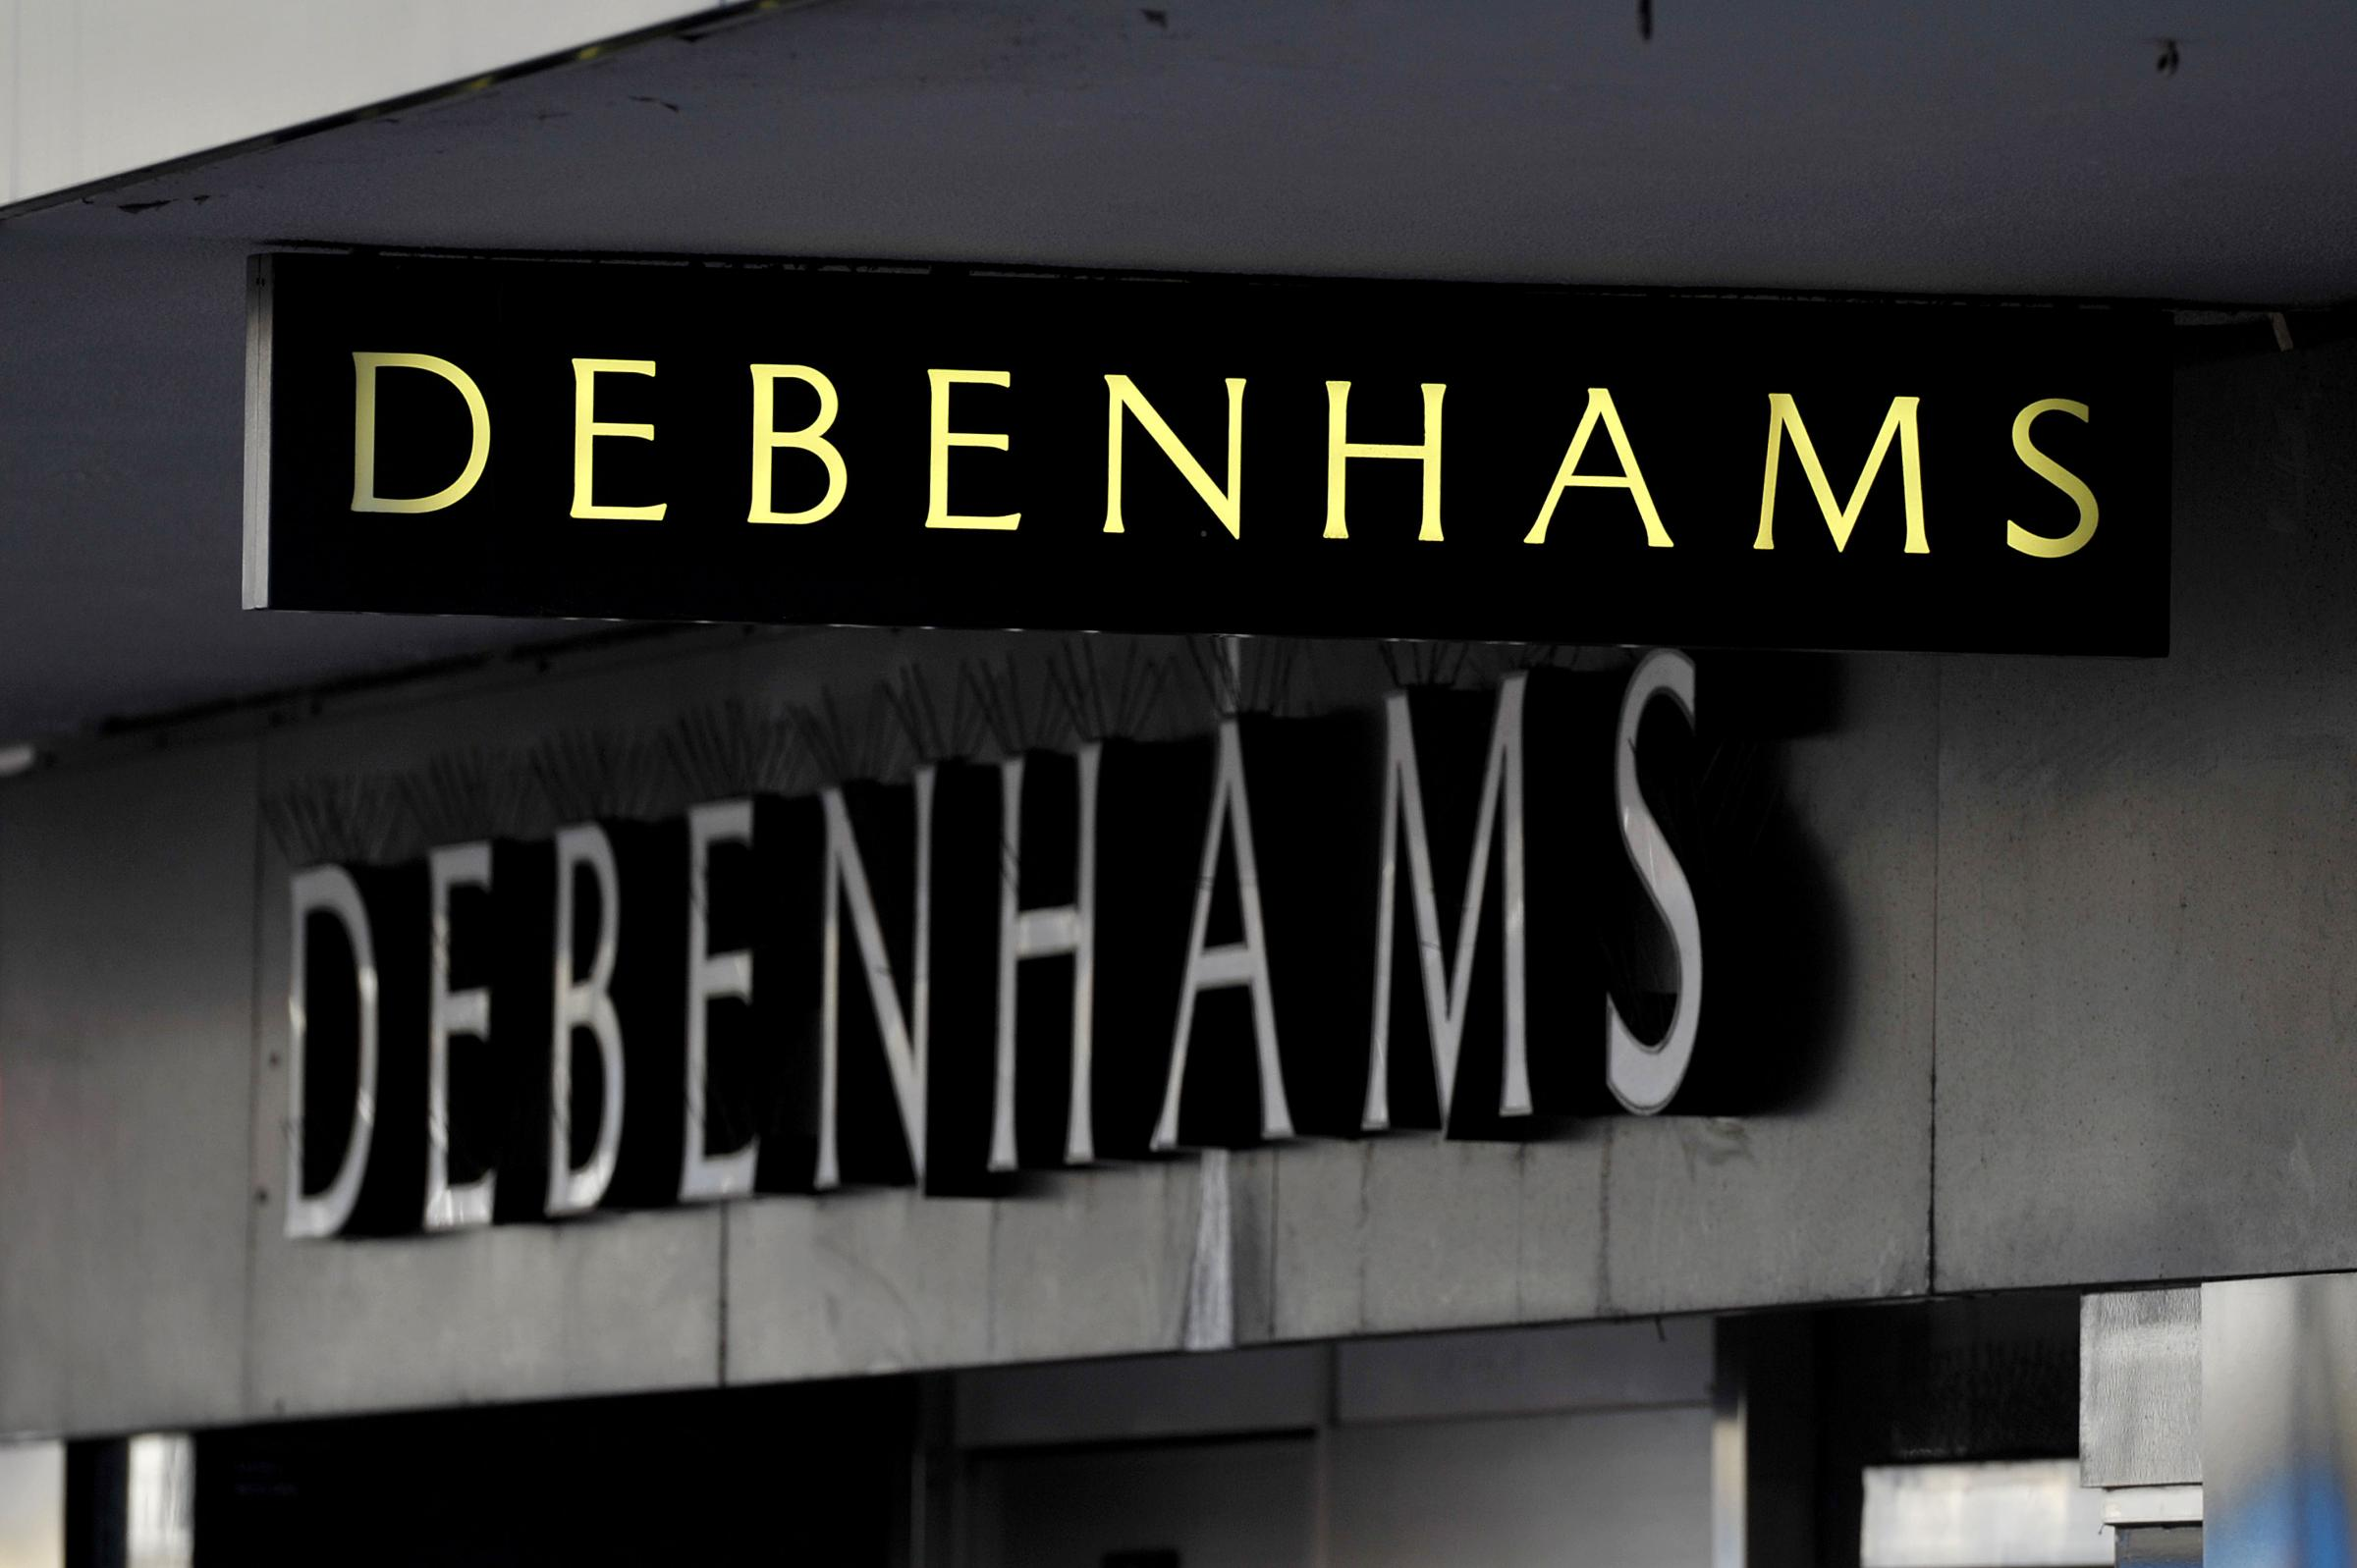 Debenhams sign